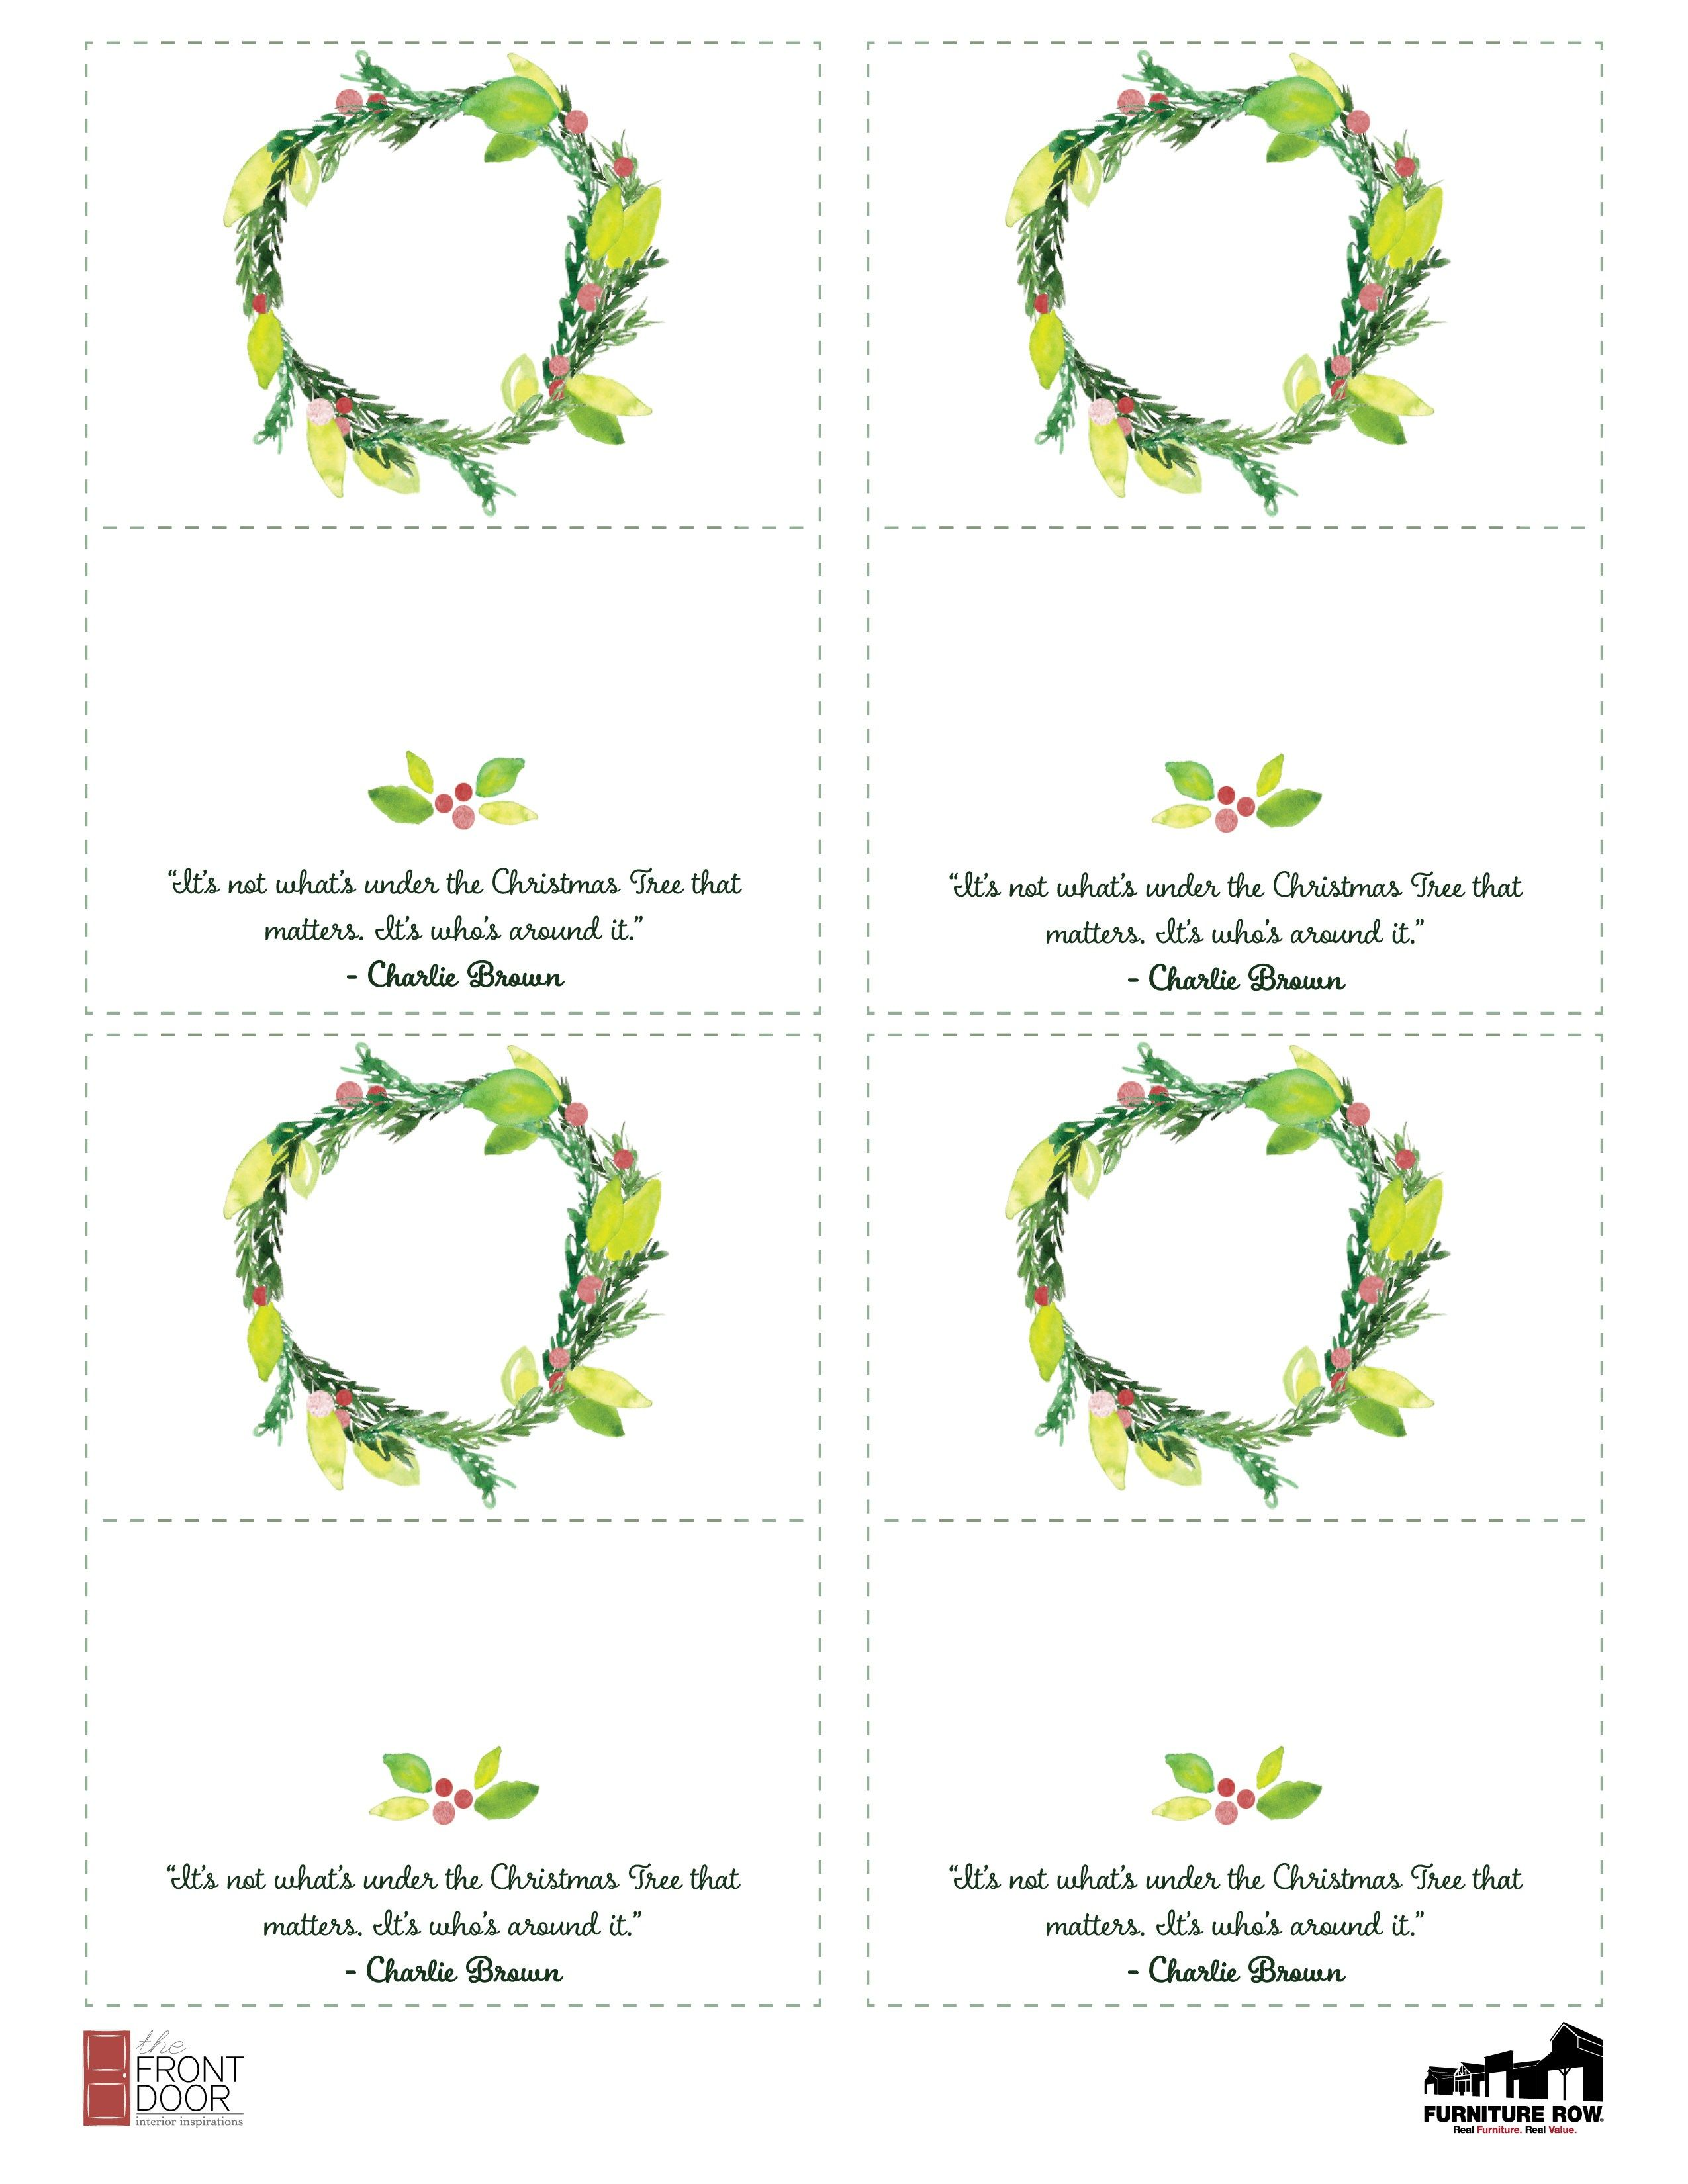 Printable Christmas Place Name Cards For Table The Front Door Christmas Place Cards Printable Place Cards Christmas Place